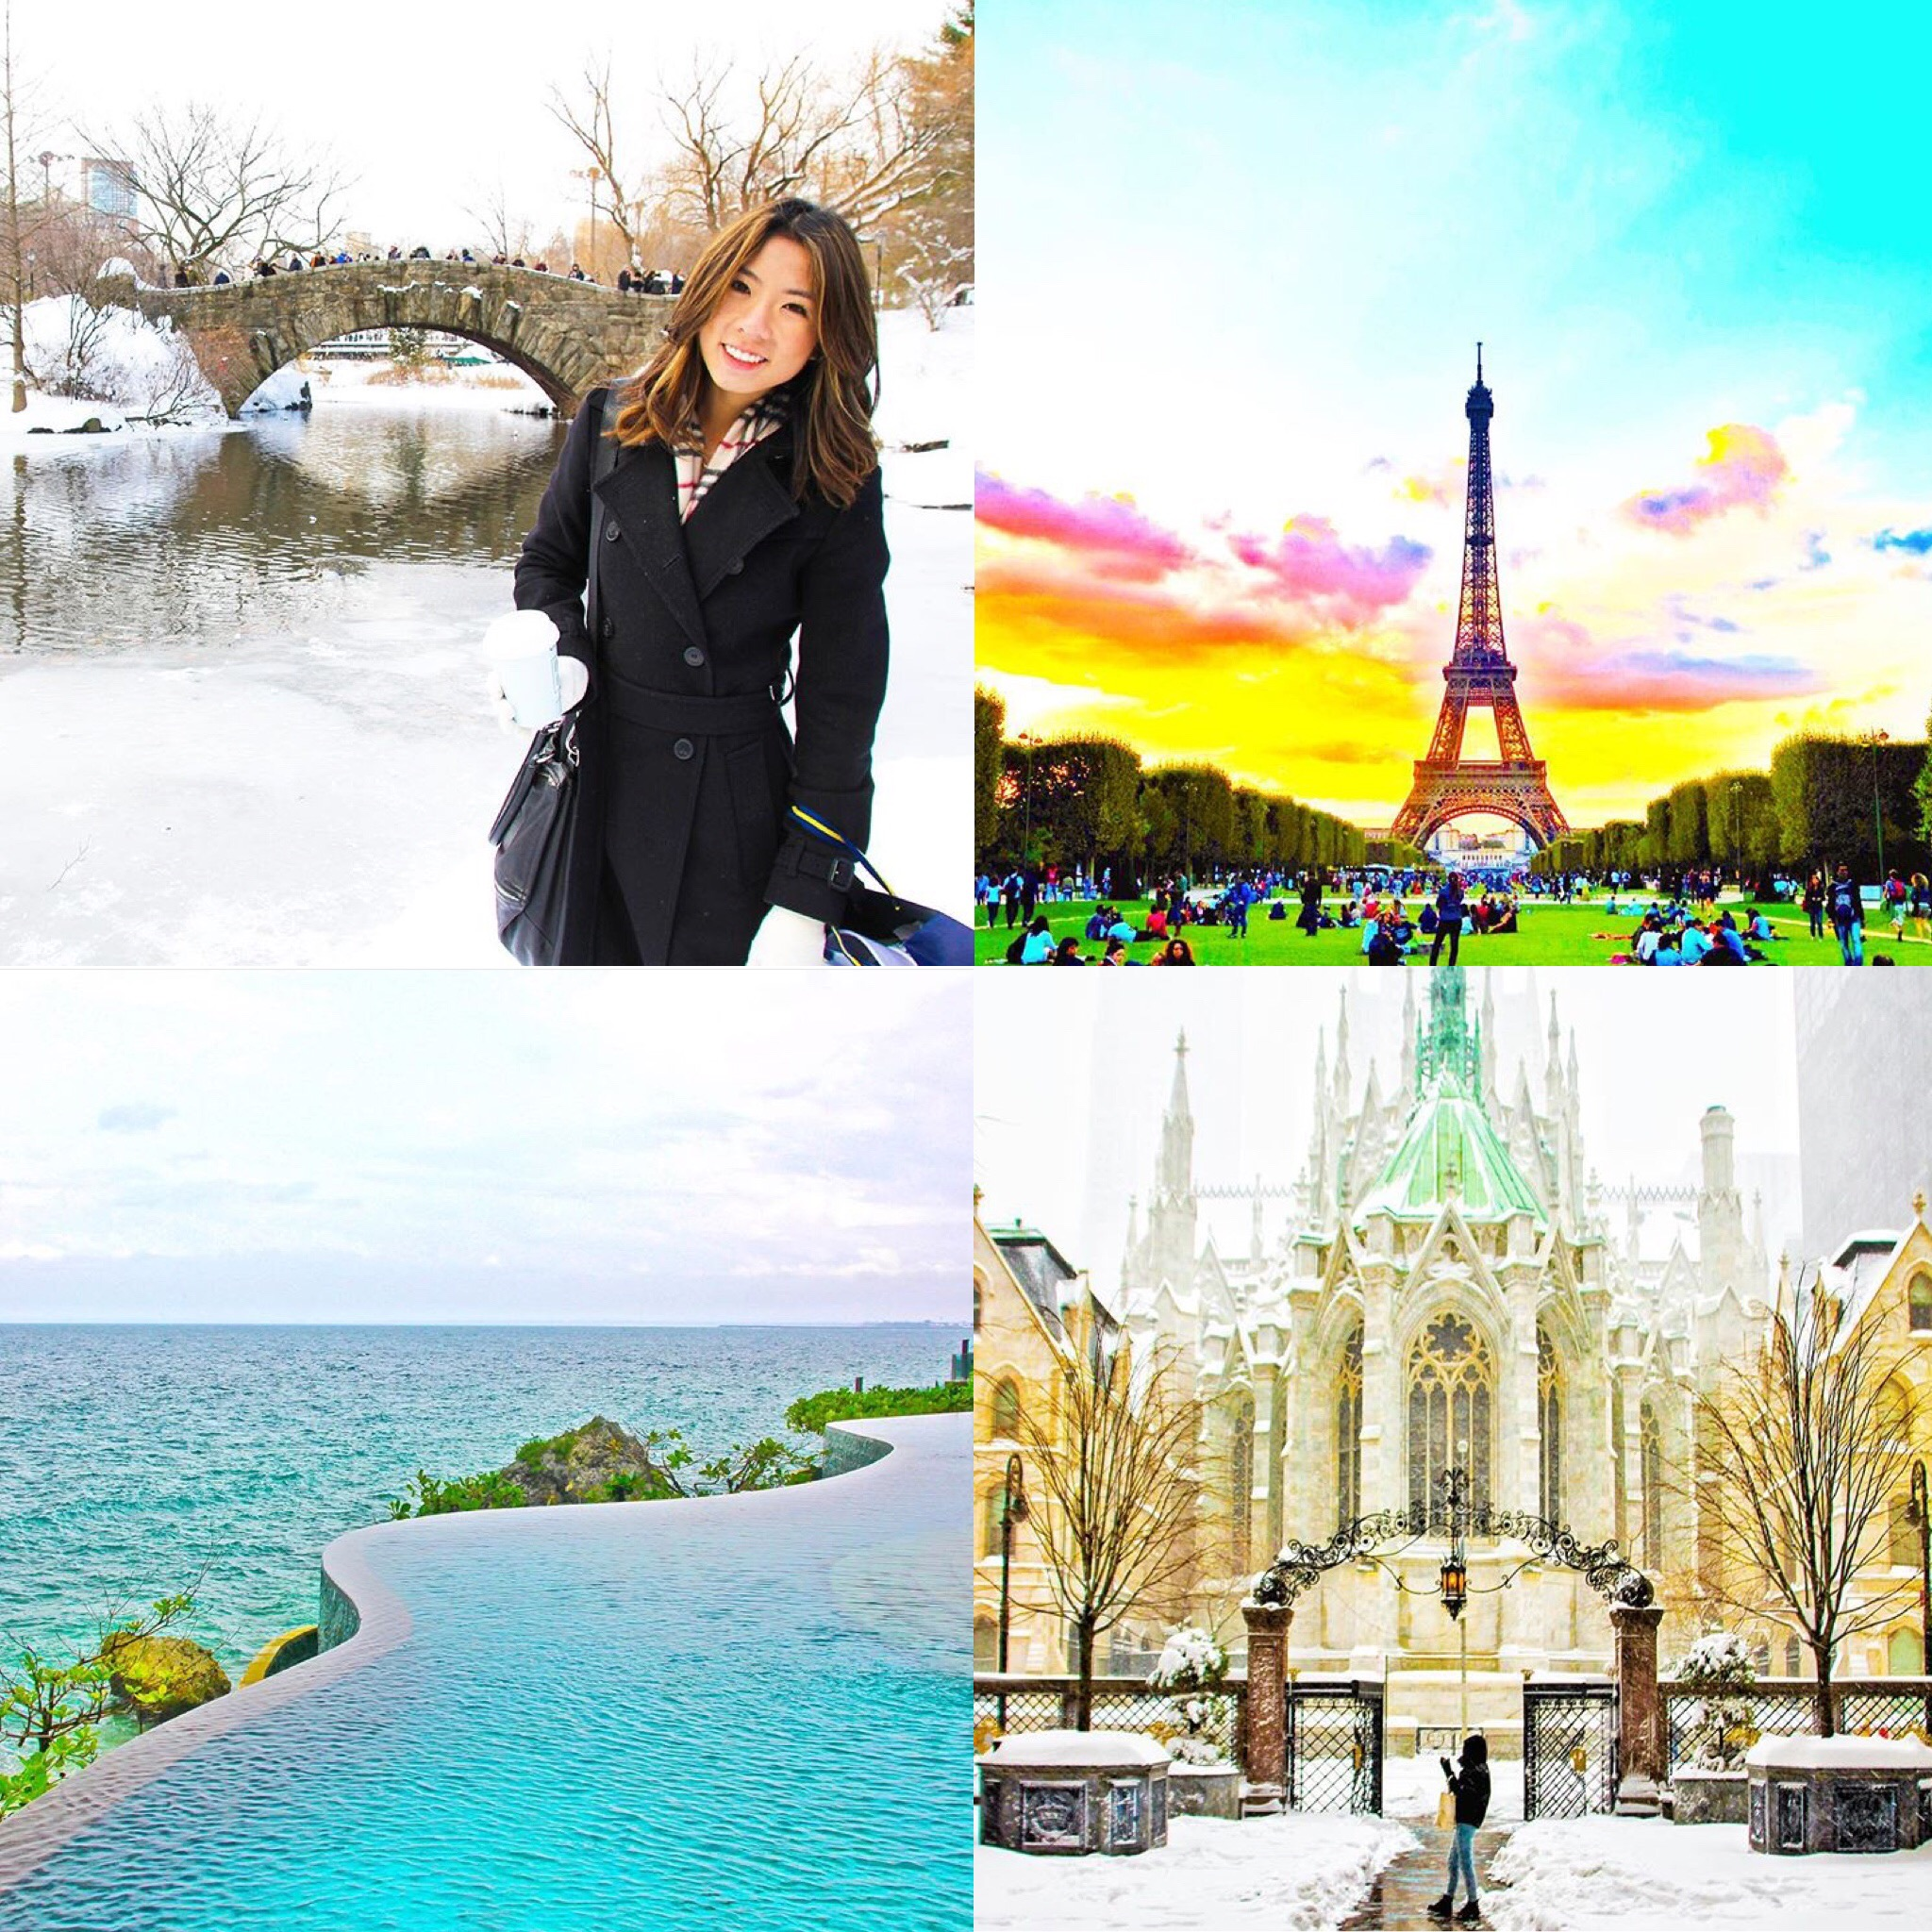 15 Instagram Travelers Who's Feeds Will Soothe Your Wanderlust | @gallivantingbean